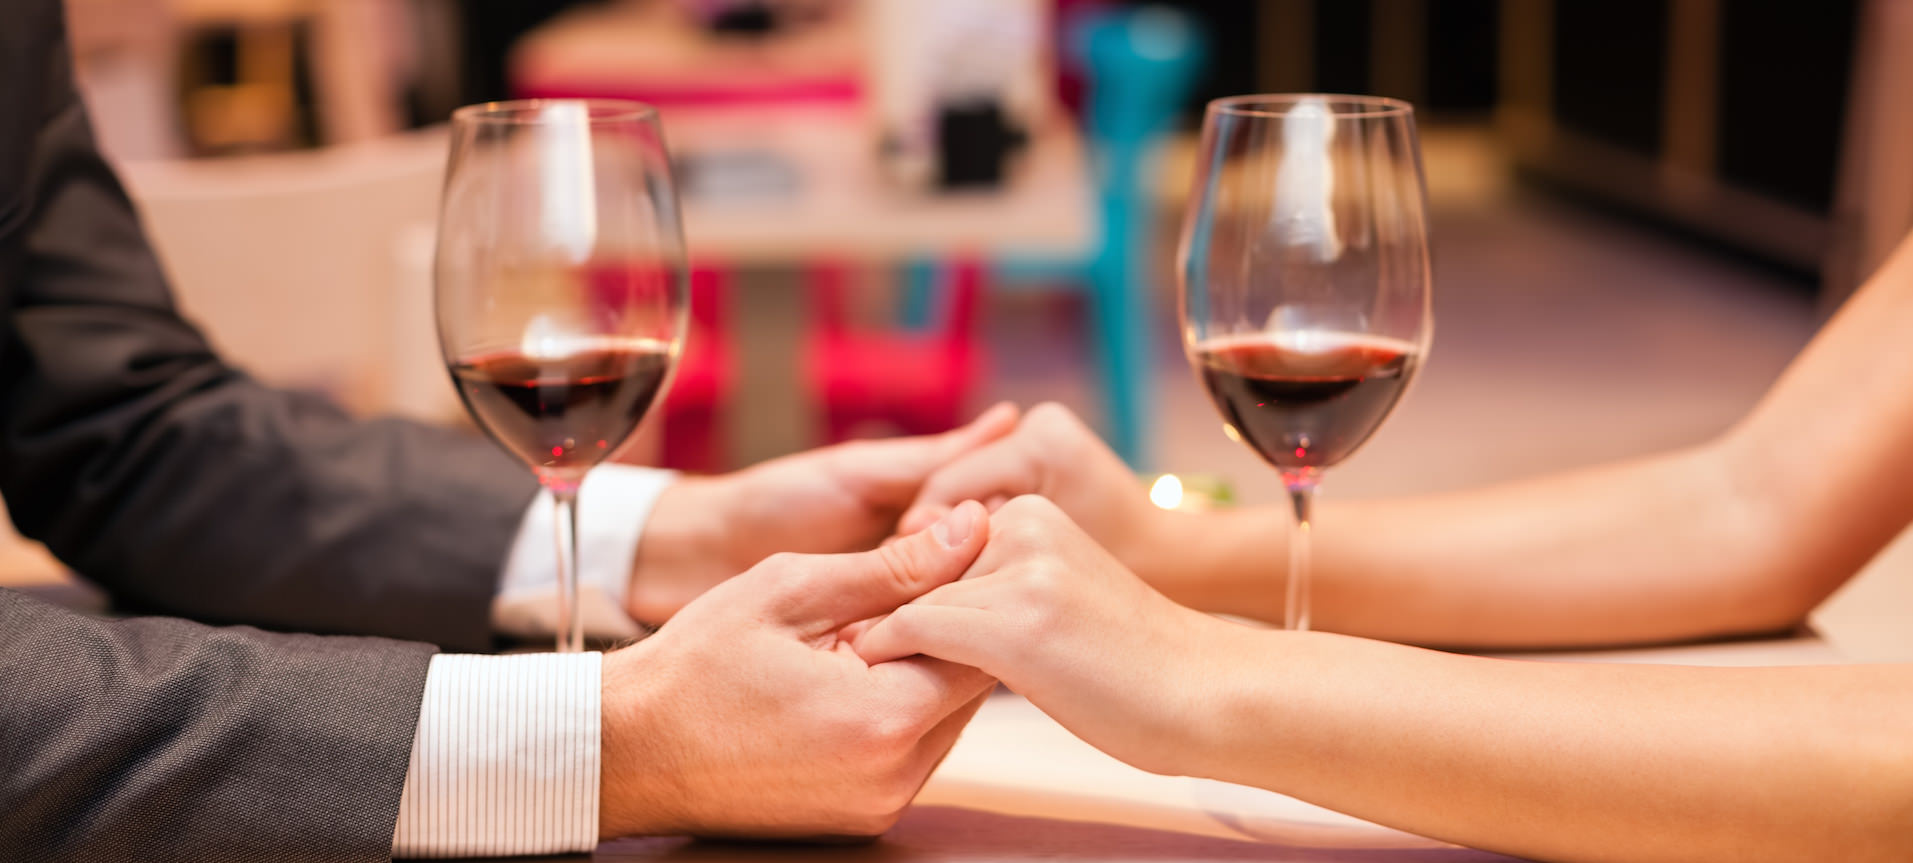 Where To Feed The Lust on Valentine's Day? A Quick Guide